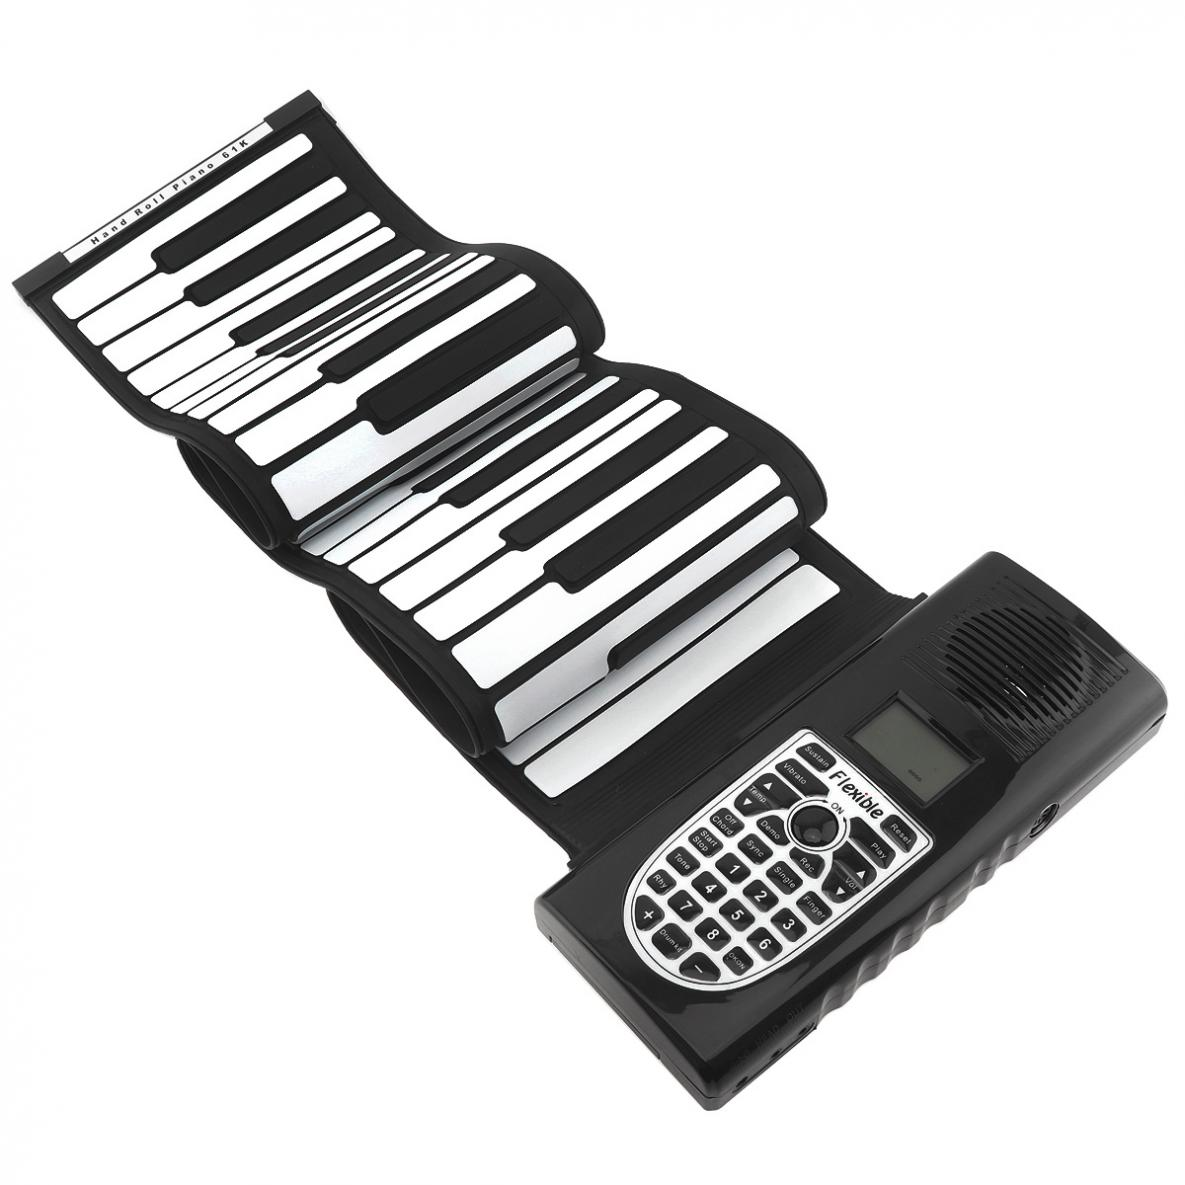 61 Keys USB MIDI Output Roll Up Piano Electronic Portable High Quality Silicone Flexible Keyboard Organ Built-in Speakers enlarge